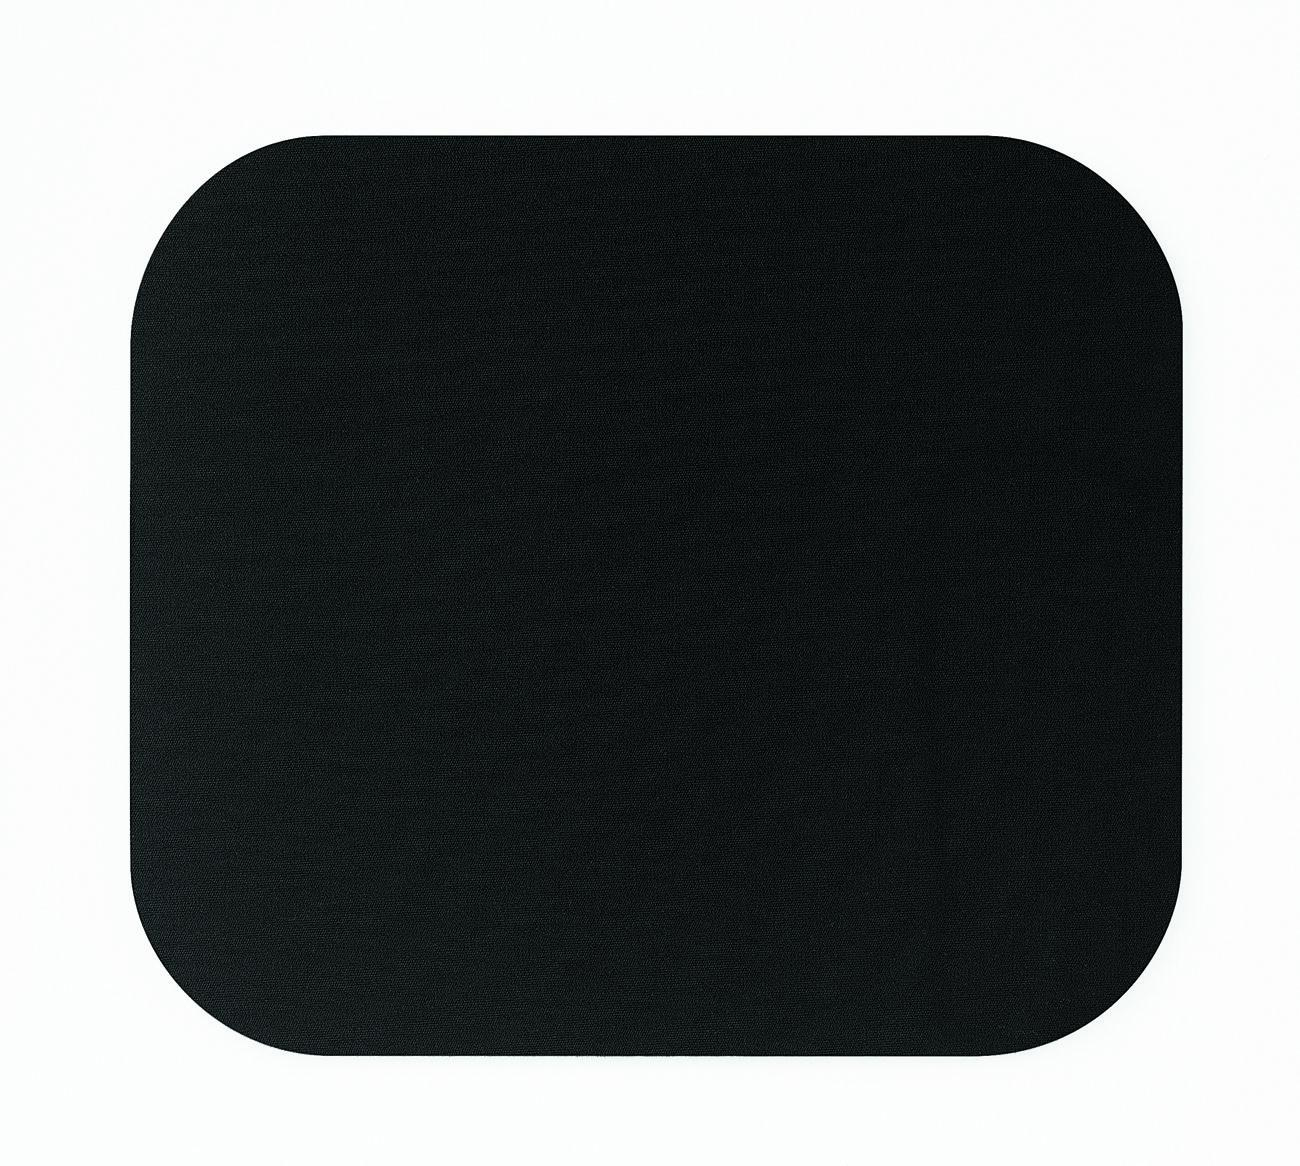 Fellowes 58024 Black Mouse Pad